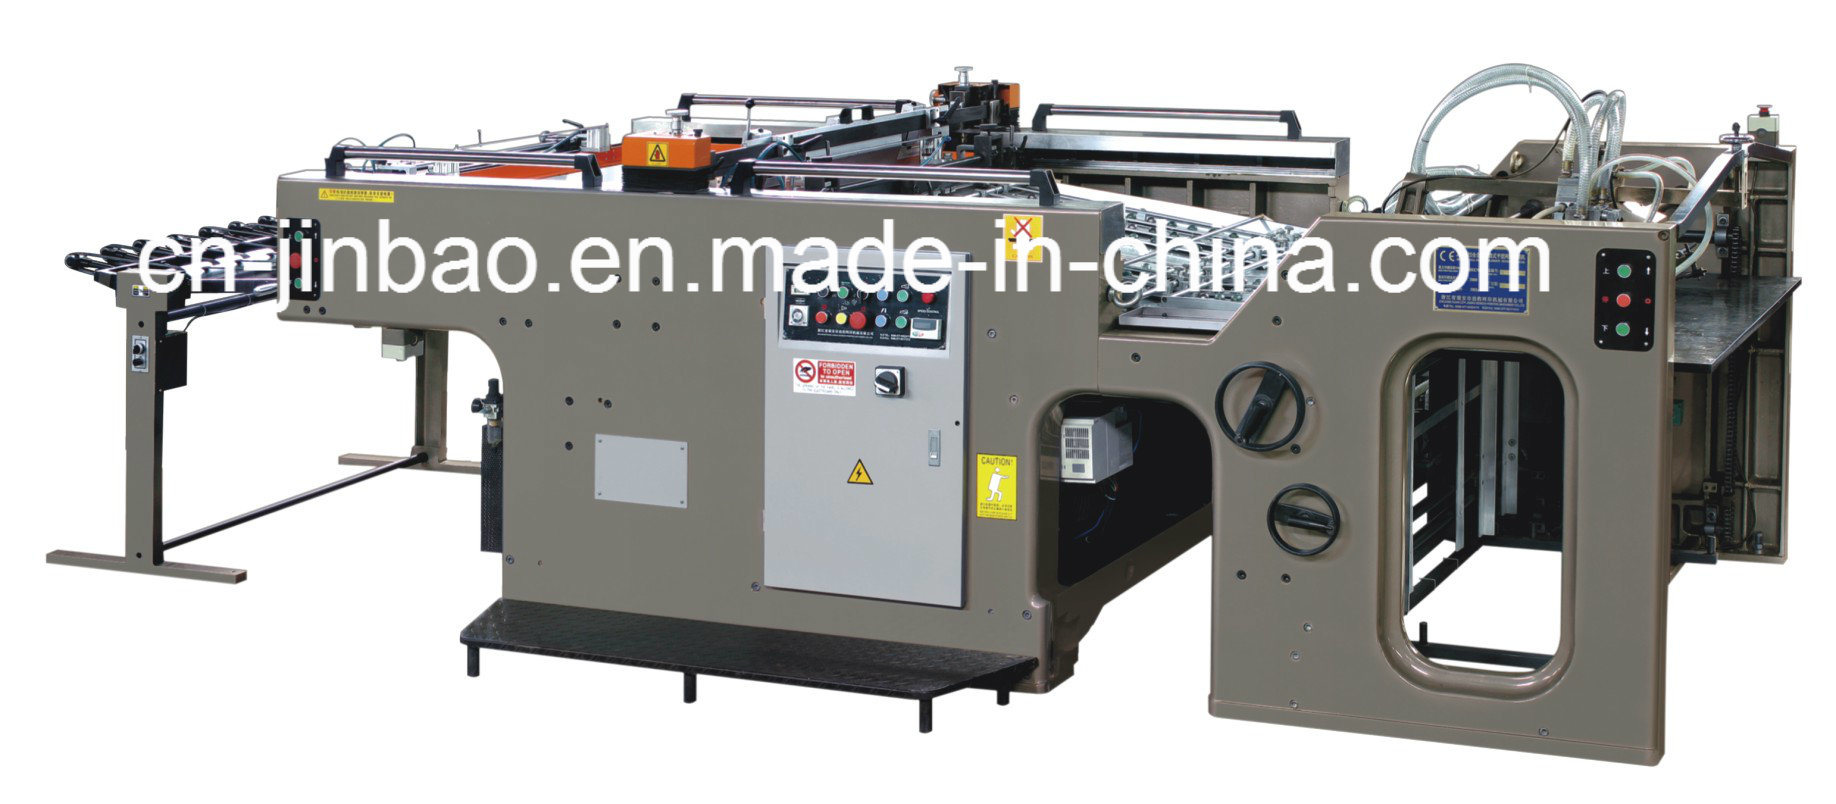 Full Automatic Cylinder Silk Screen Printing Machine (100X70cm)